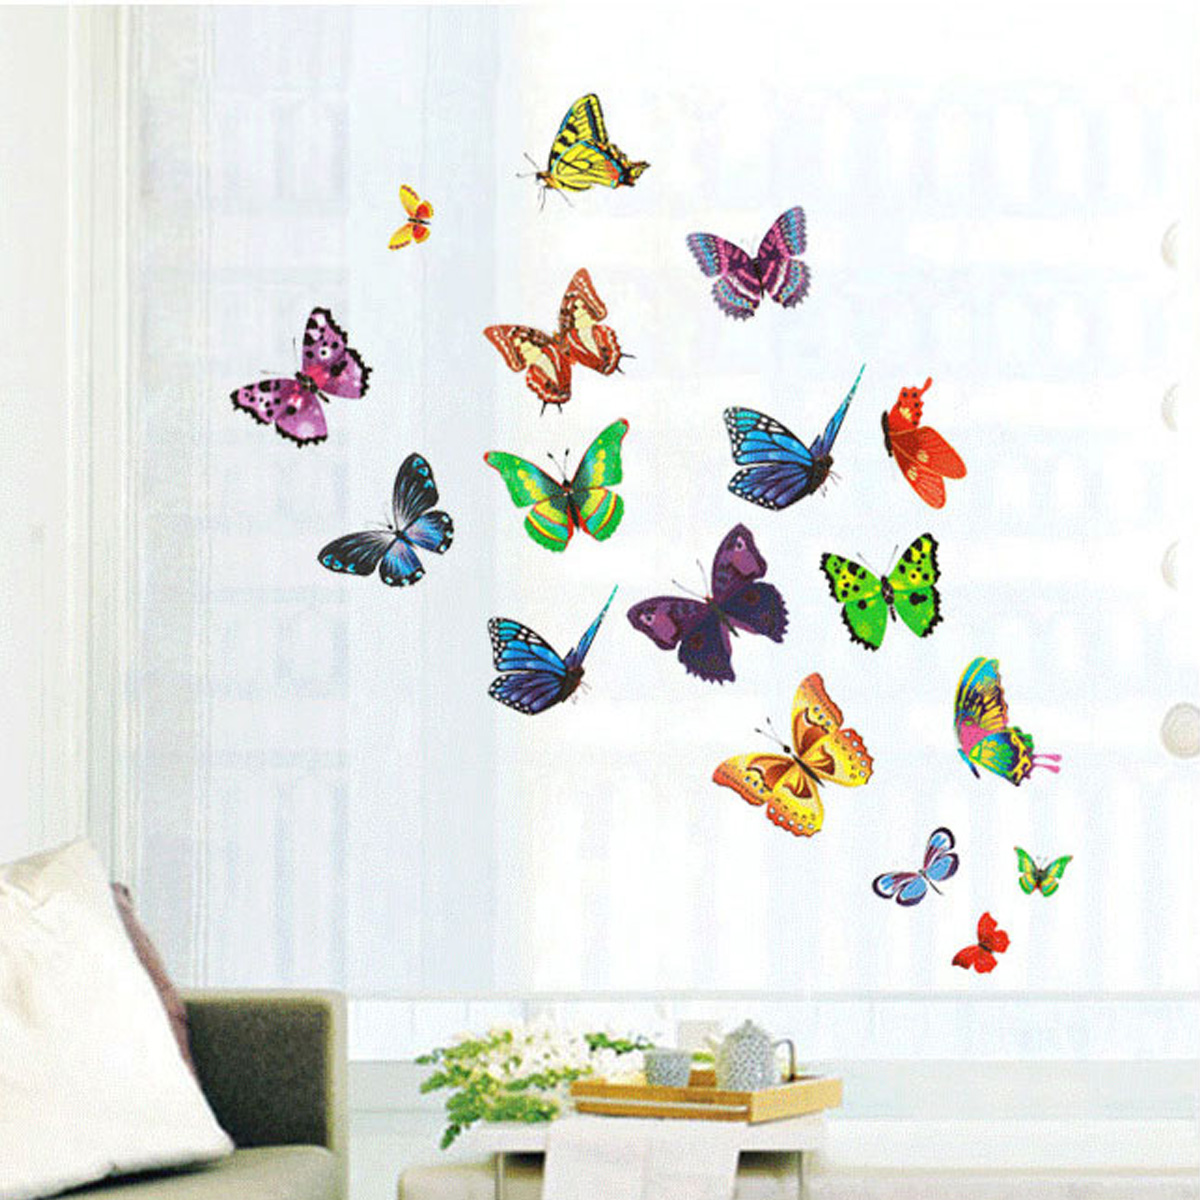 Diy 17 butterflies wall stickers mural art decals for Butterfly mural wallpaper